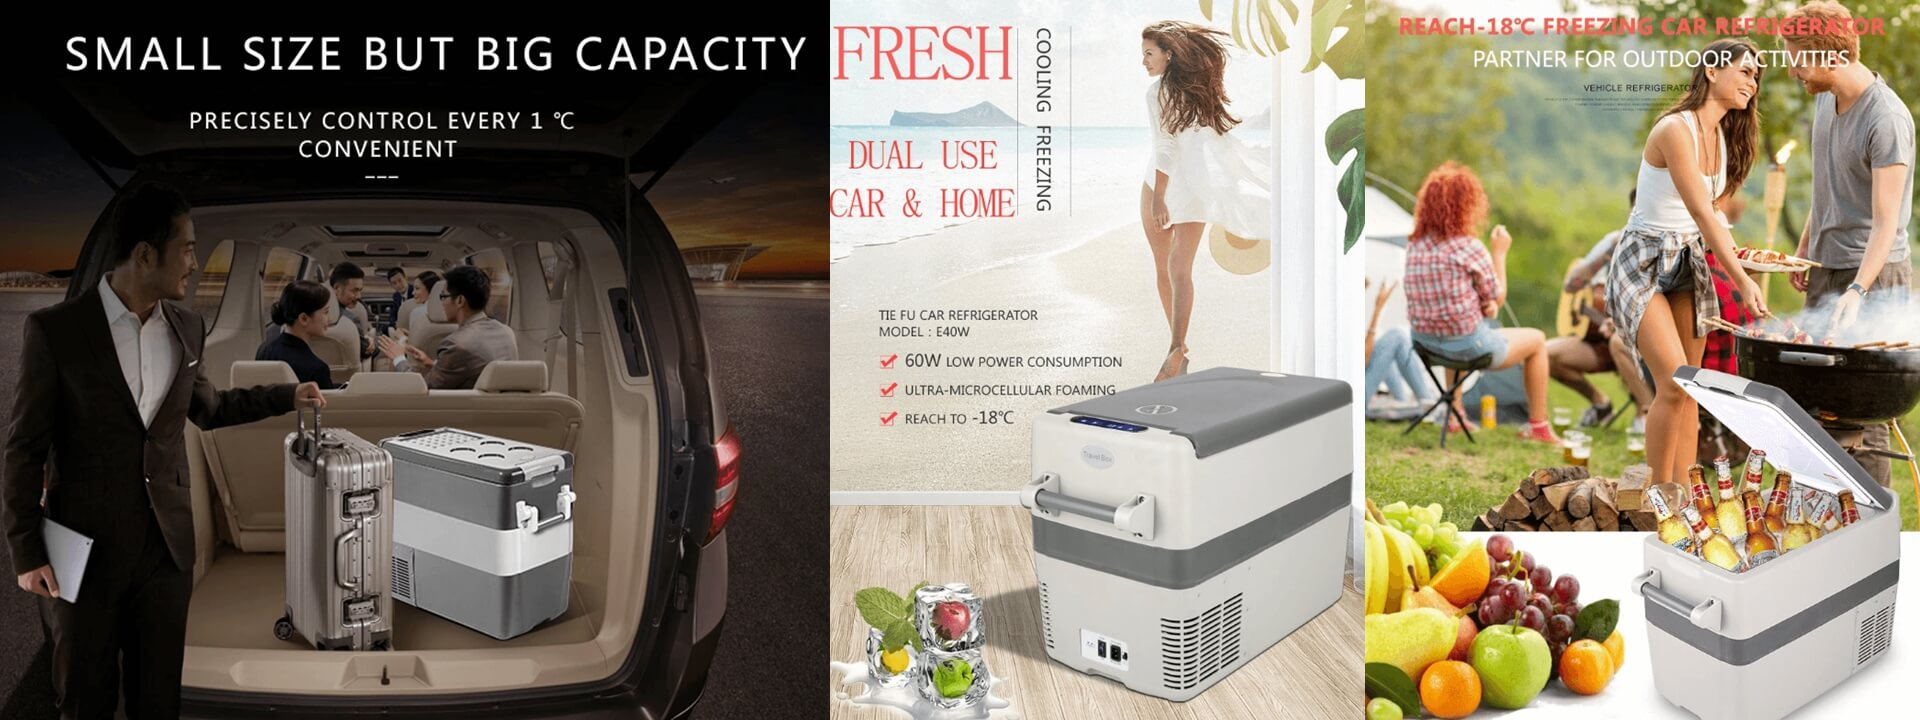 Car Fridge DC 12V DC24V Portable Camping Refrigerator